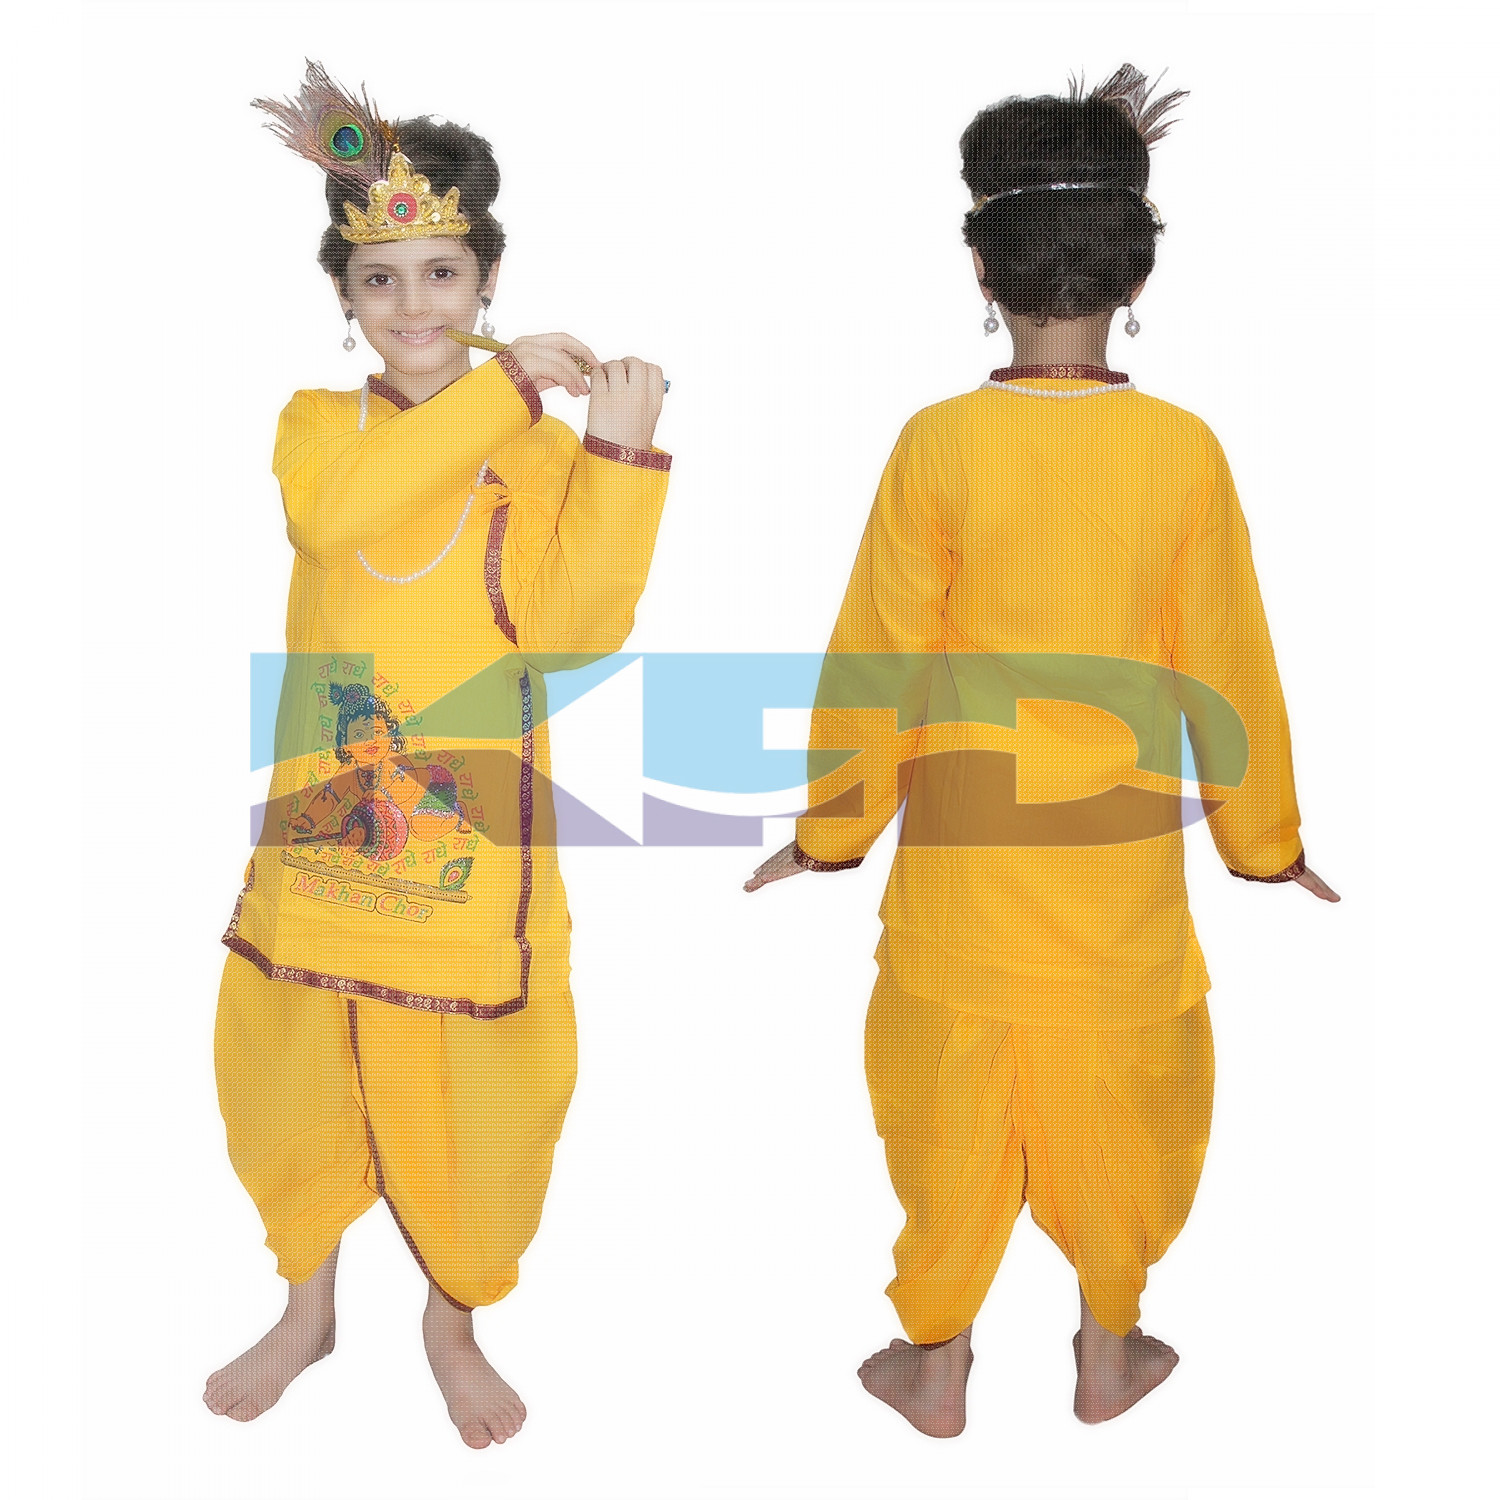 Krishna in Cotton fancy dress for kids,Krishnaleela/Janmashtami/Kanha/Mythological Character for Annual functionTtheme Party/Competition/Stage Shows Dress